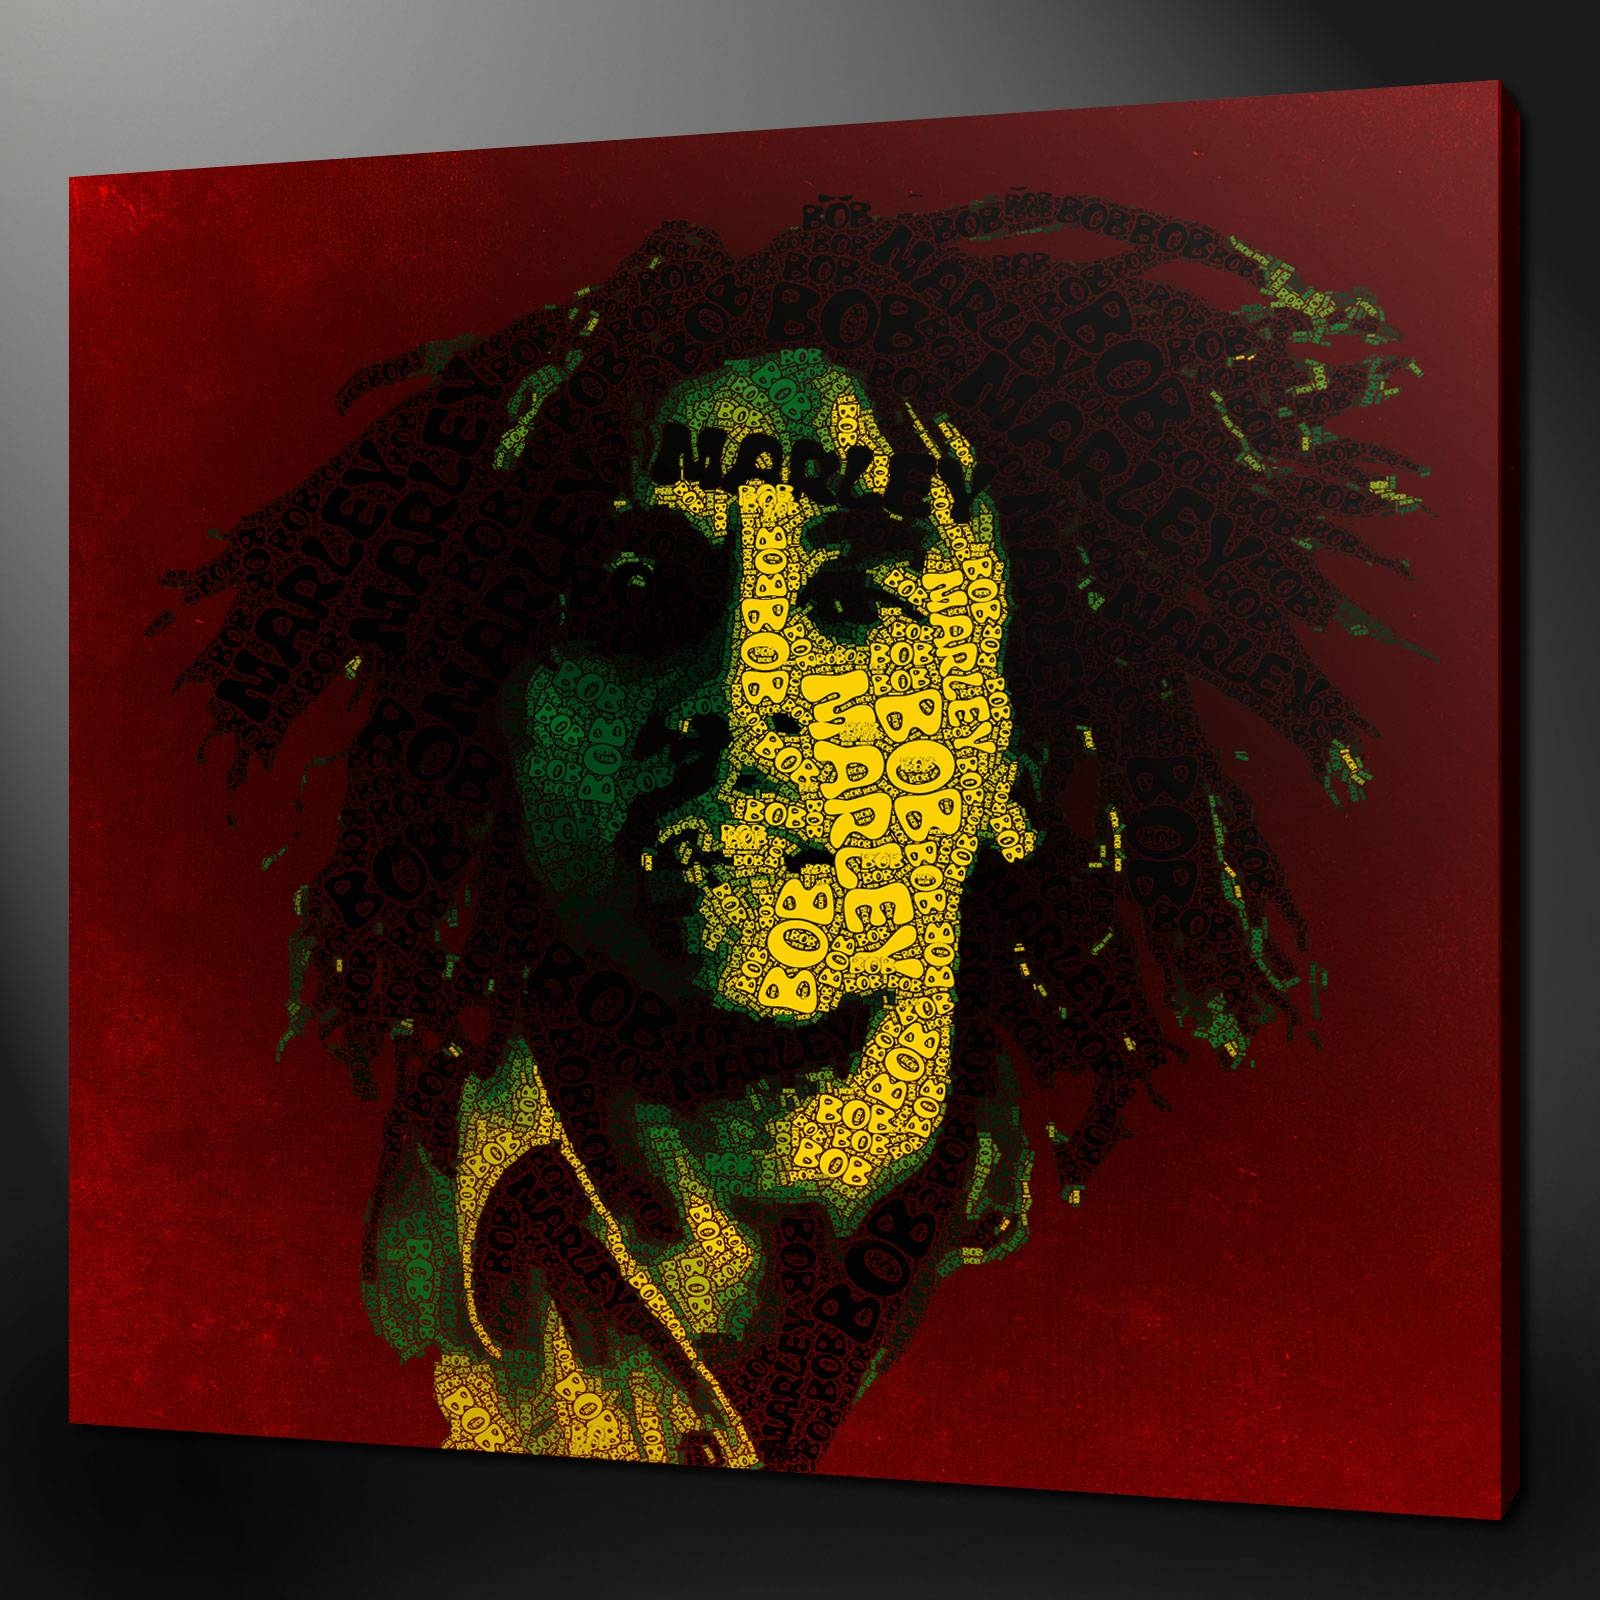 Bob Marley Typography Music Reggae Wall Art Picture Canvas Print Intended For Current Bob Marley Canvas Wall Art (Gallery 19 of 25)